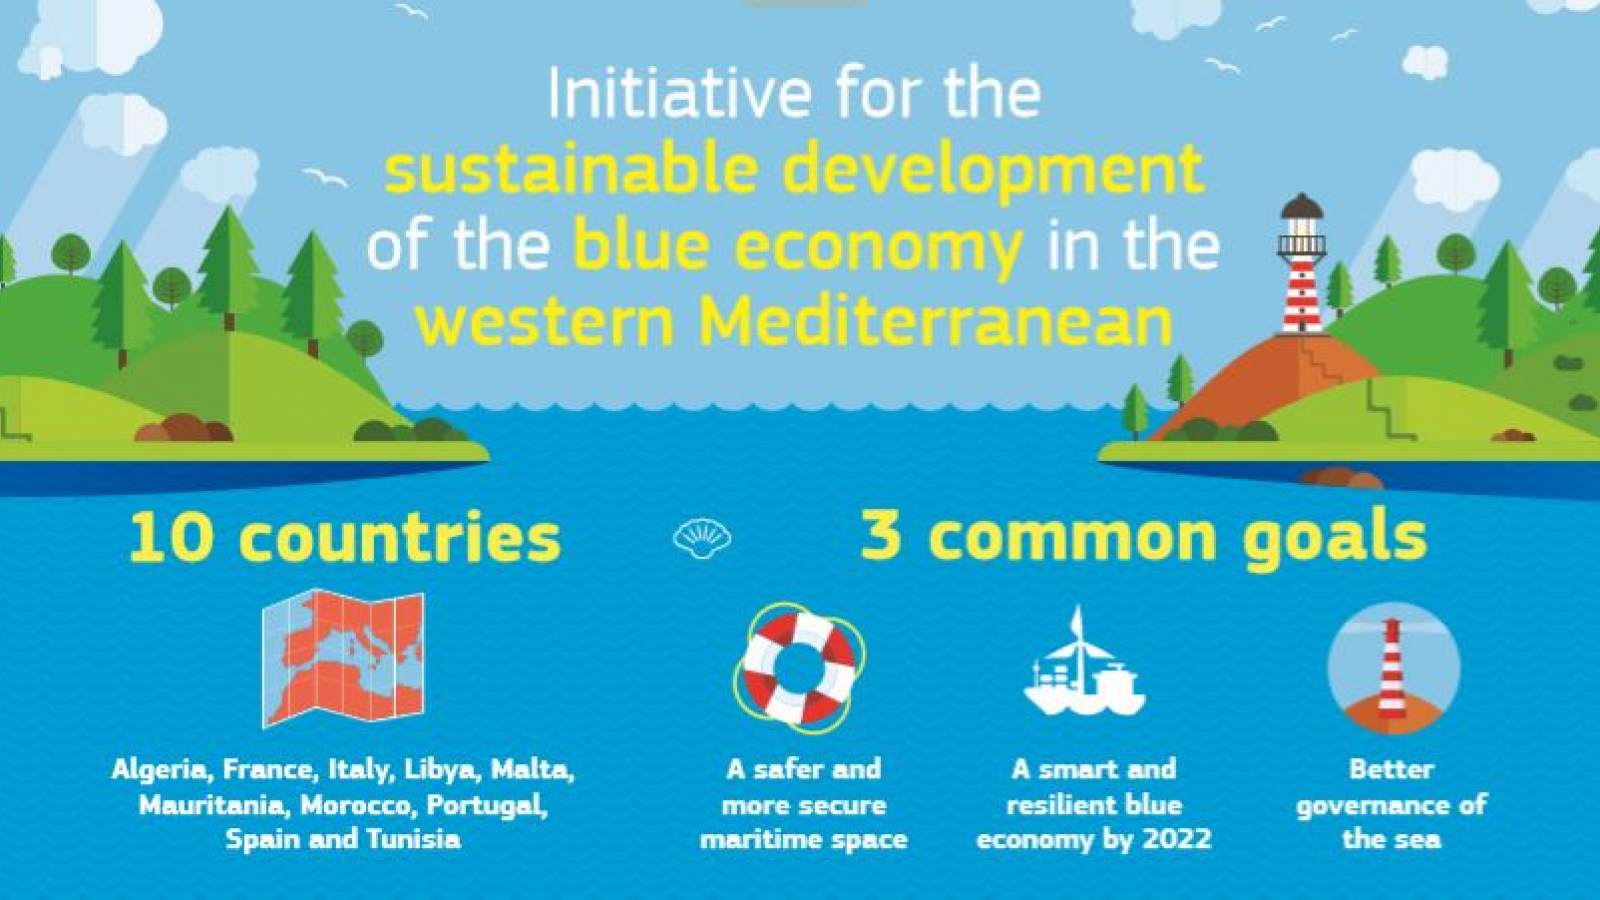 The European Commission launches the WestMED Initiative for a safer and more secure Mediterranean maritime space